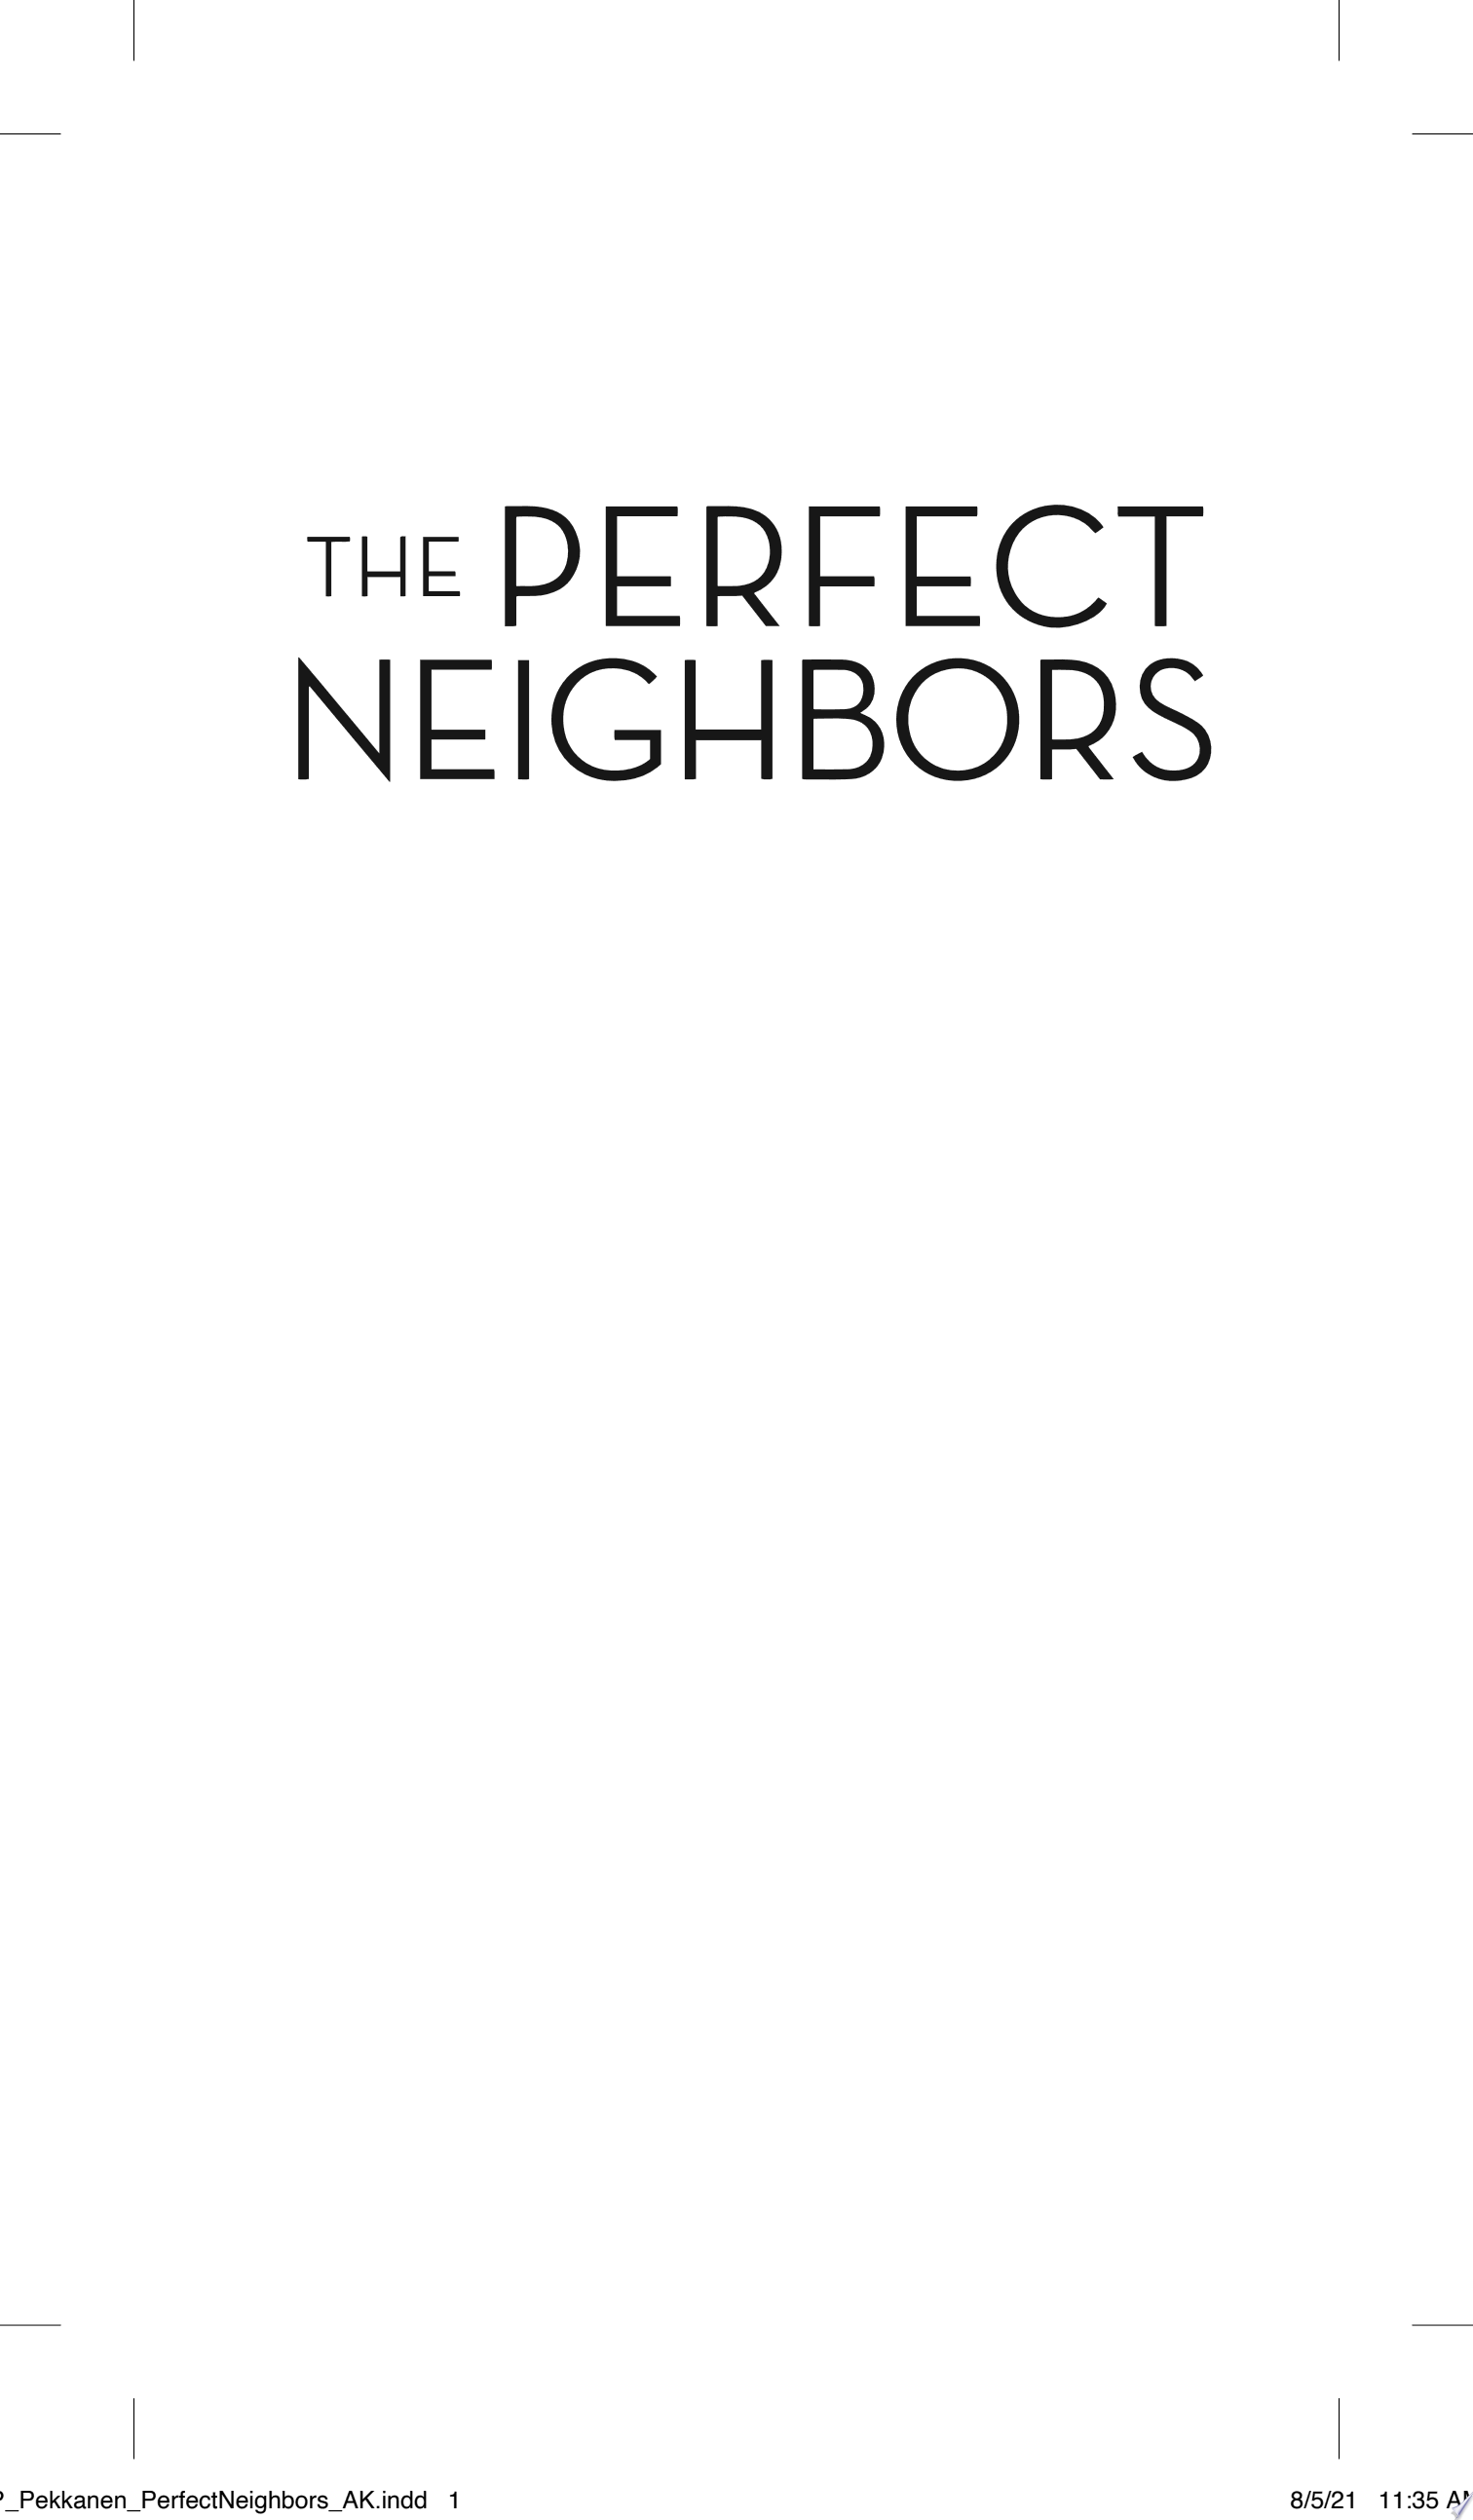 The Perfect Neighbors